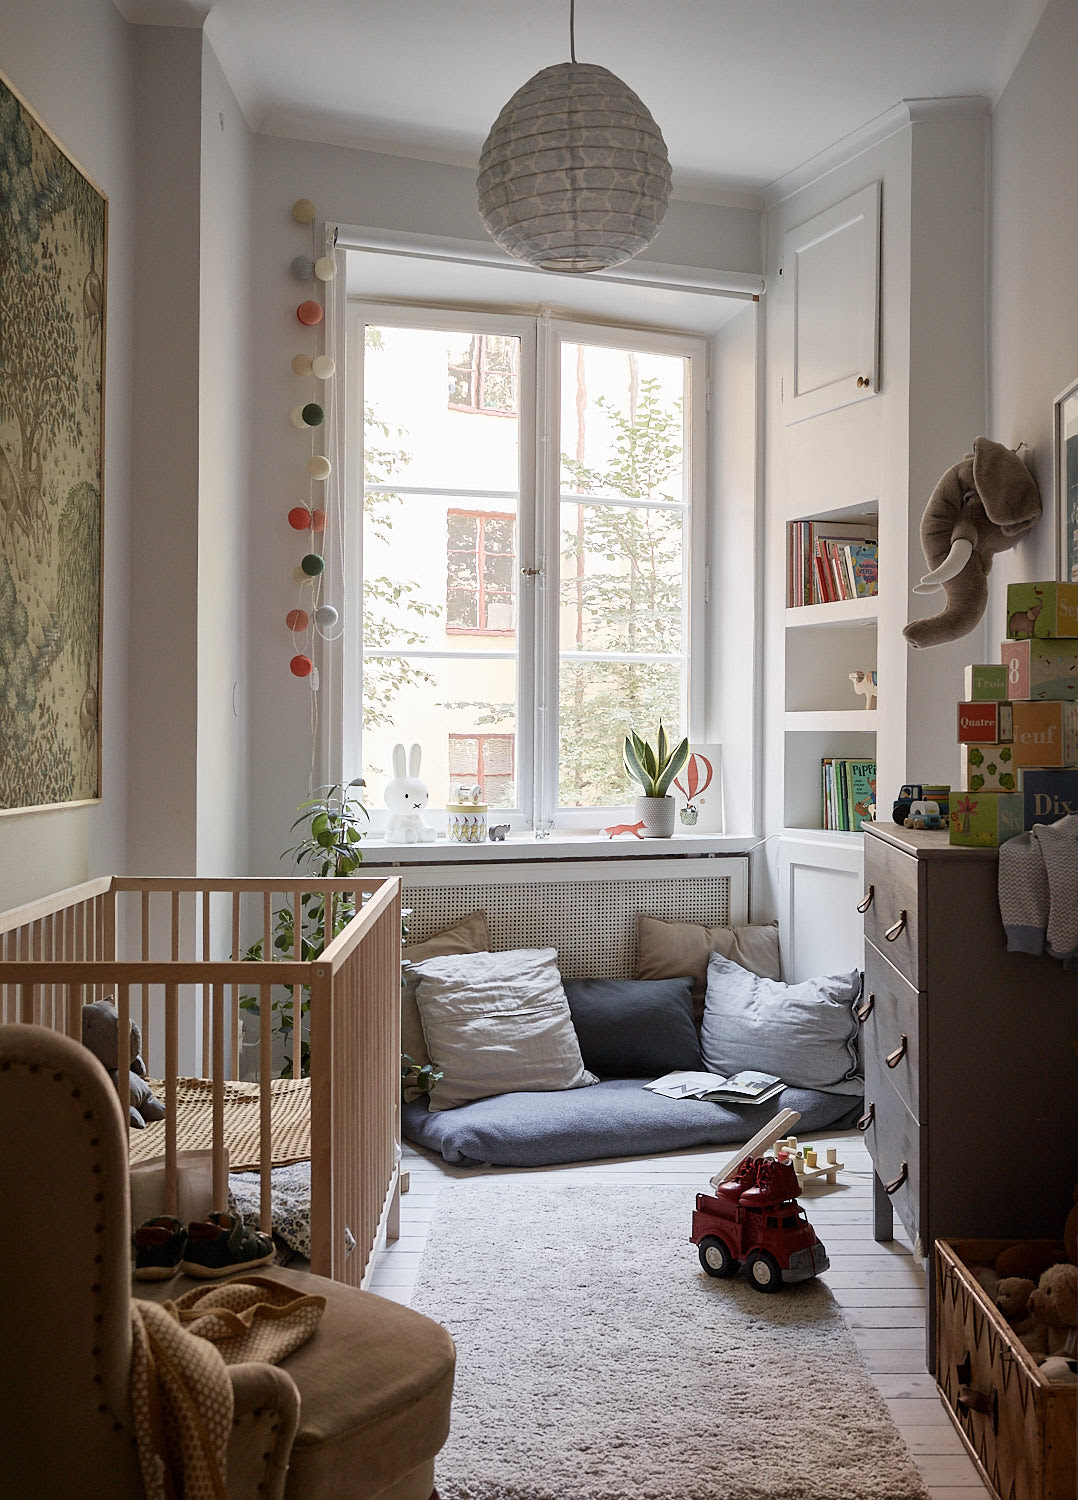 A light filled family home in Stockholm